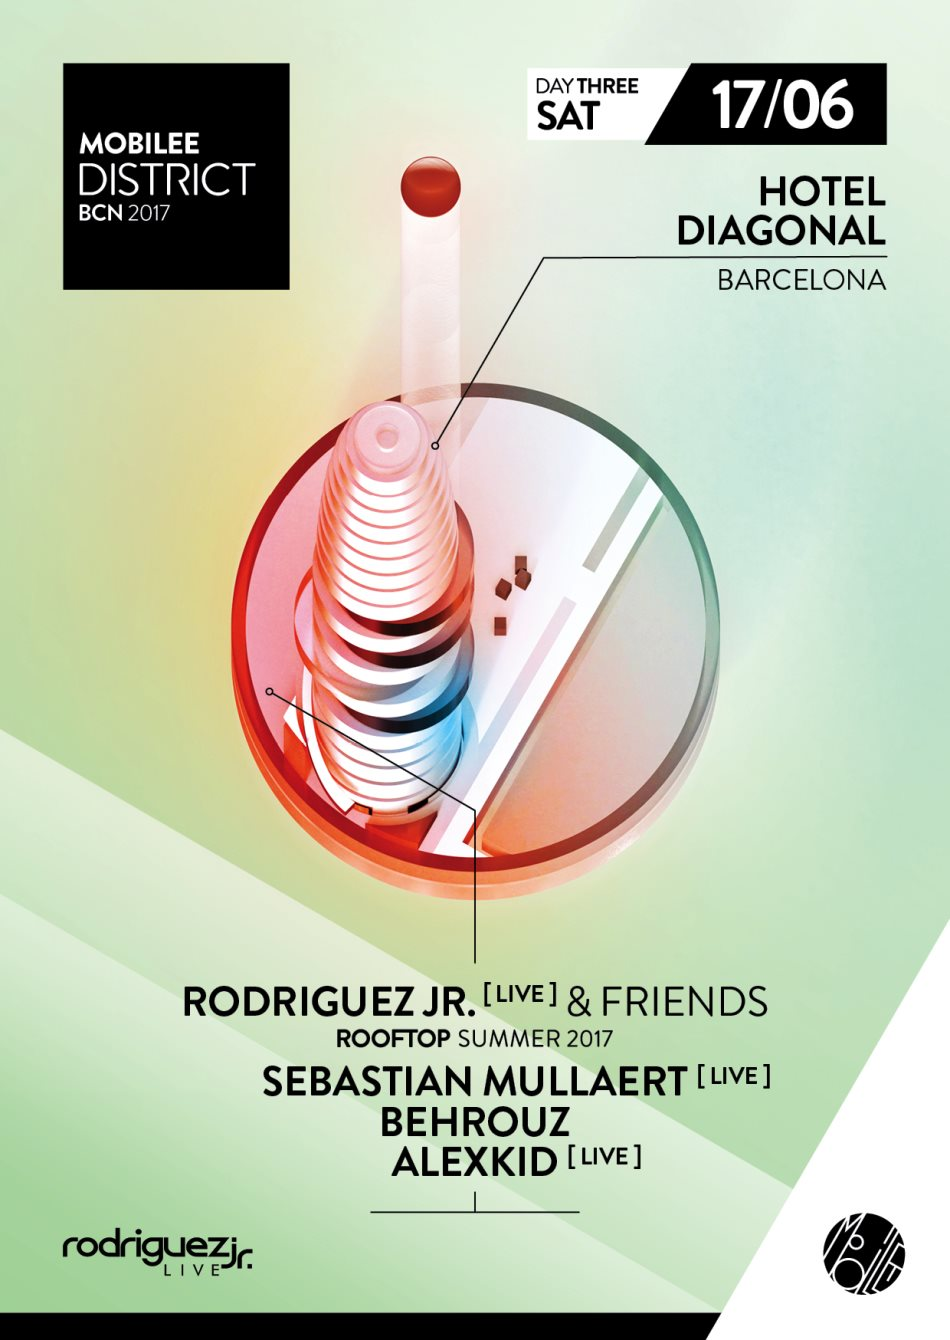 download → Rodriguez Jr., Behrouz, Alexkid - live at Rodriguez Jr. & Friends Rooftop (Hotel Diagonal, Barcelona, Sonar 2017) - 17-Jun-2017